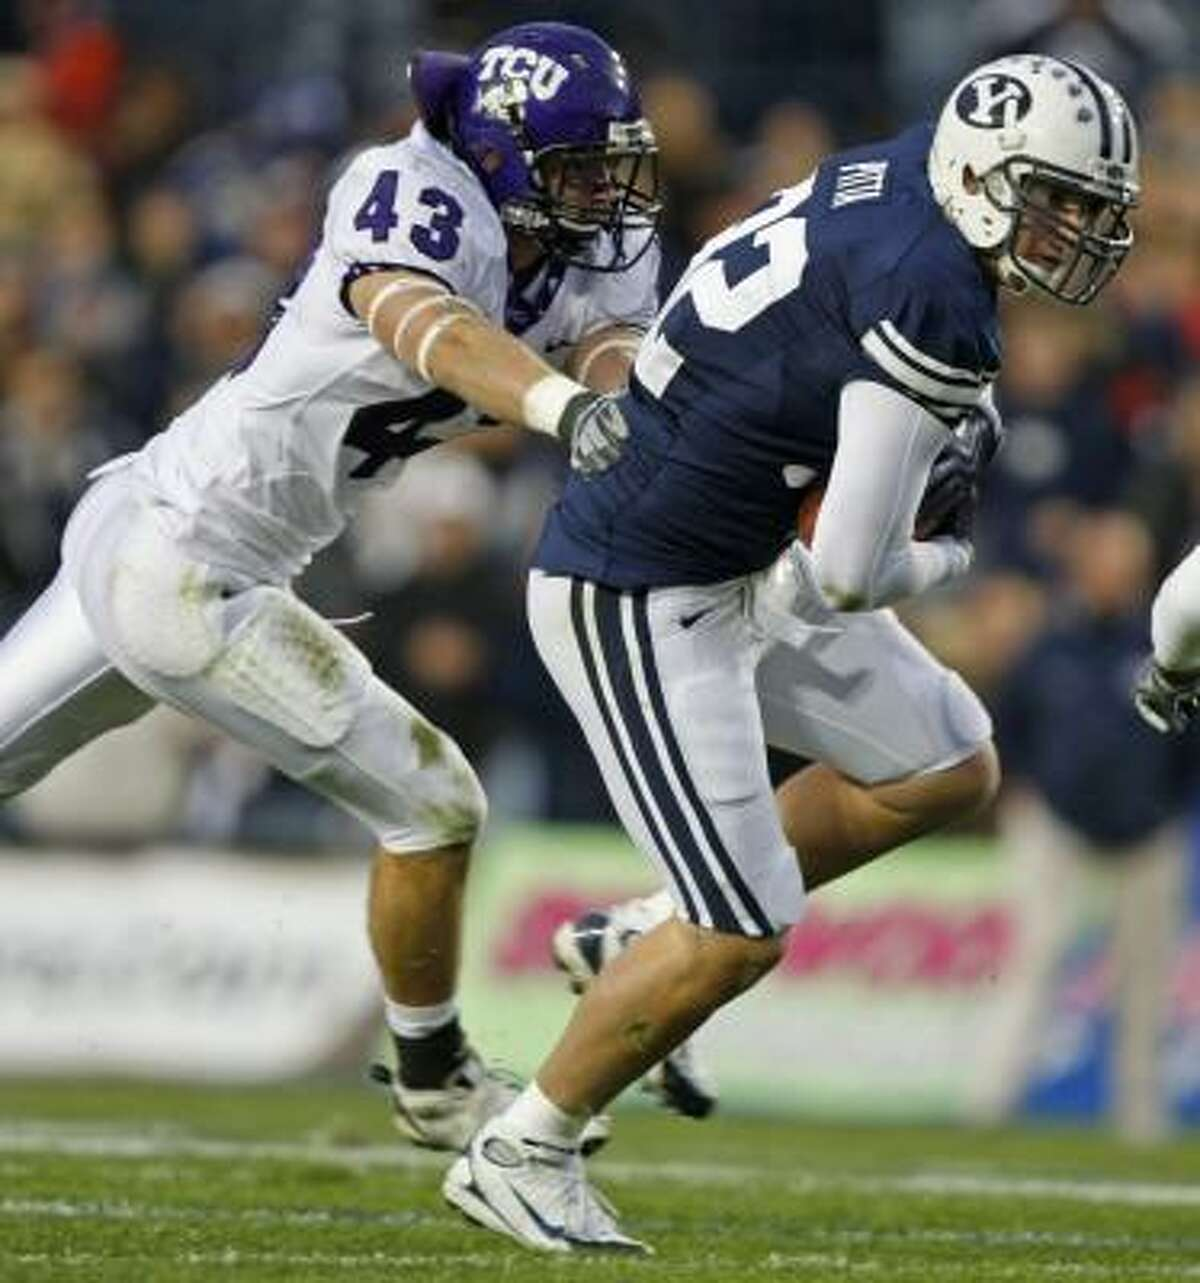 BYU's Dennis Pitta, right, catches a pass against TCU's Tank Carder during the first half.